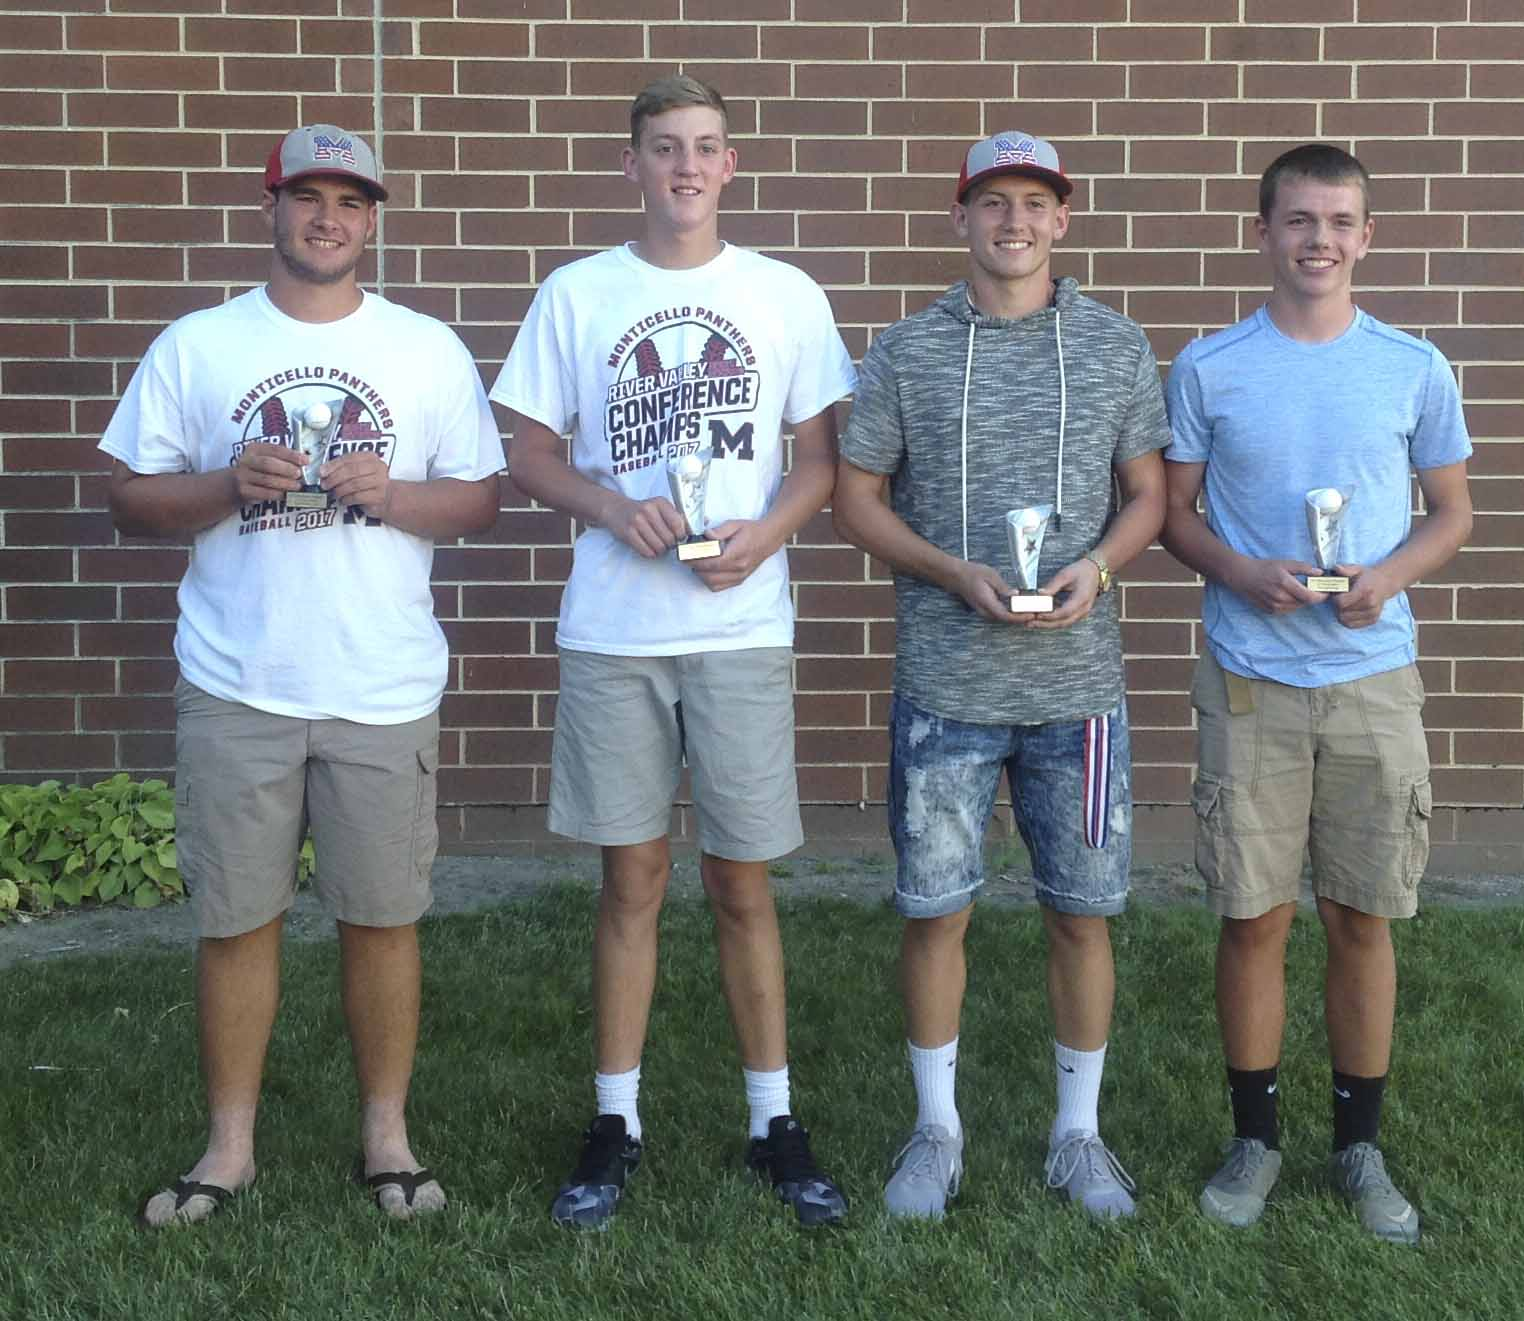 Cy Young Award winners, from left: Ryan Manternach, Kegan Arduser, Andrew Mescher and Kyle Sperfslage.